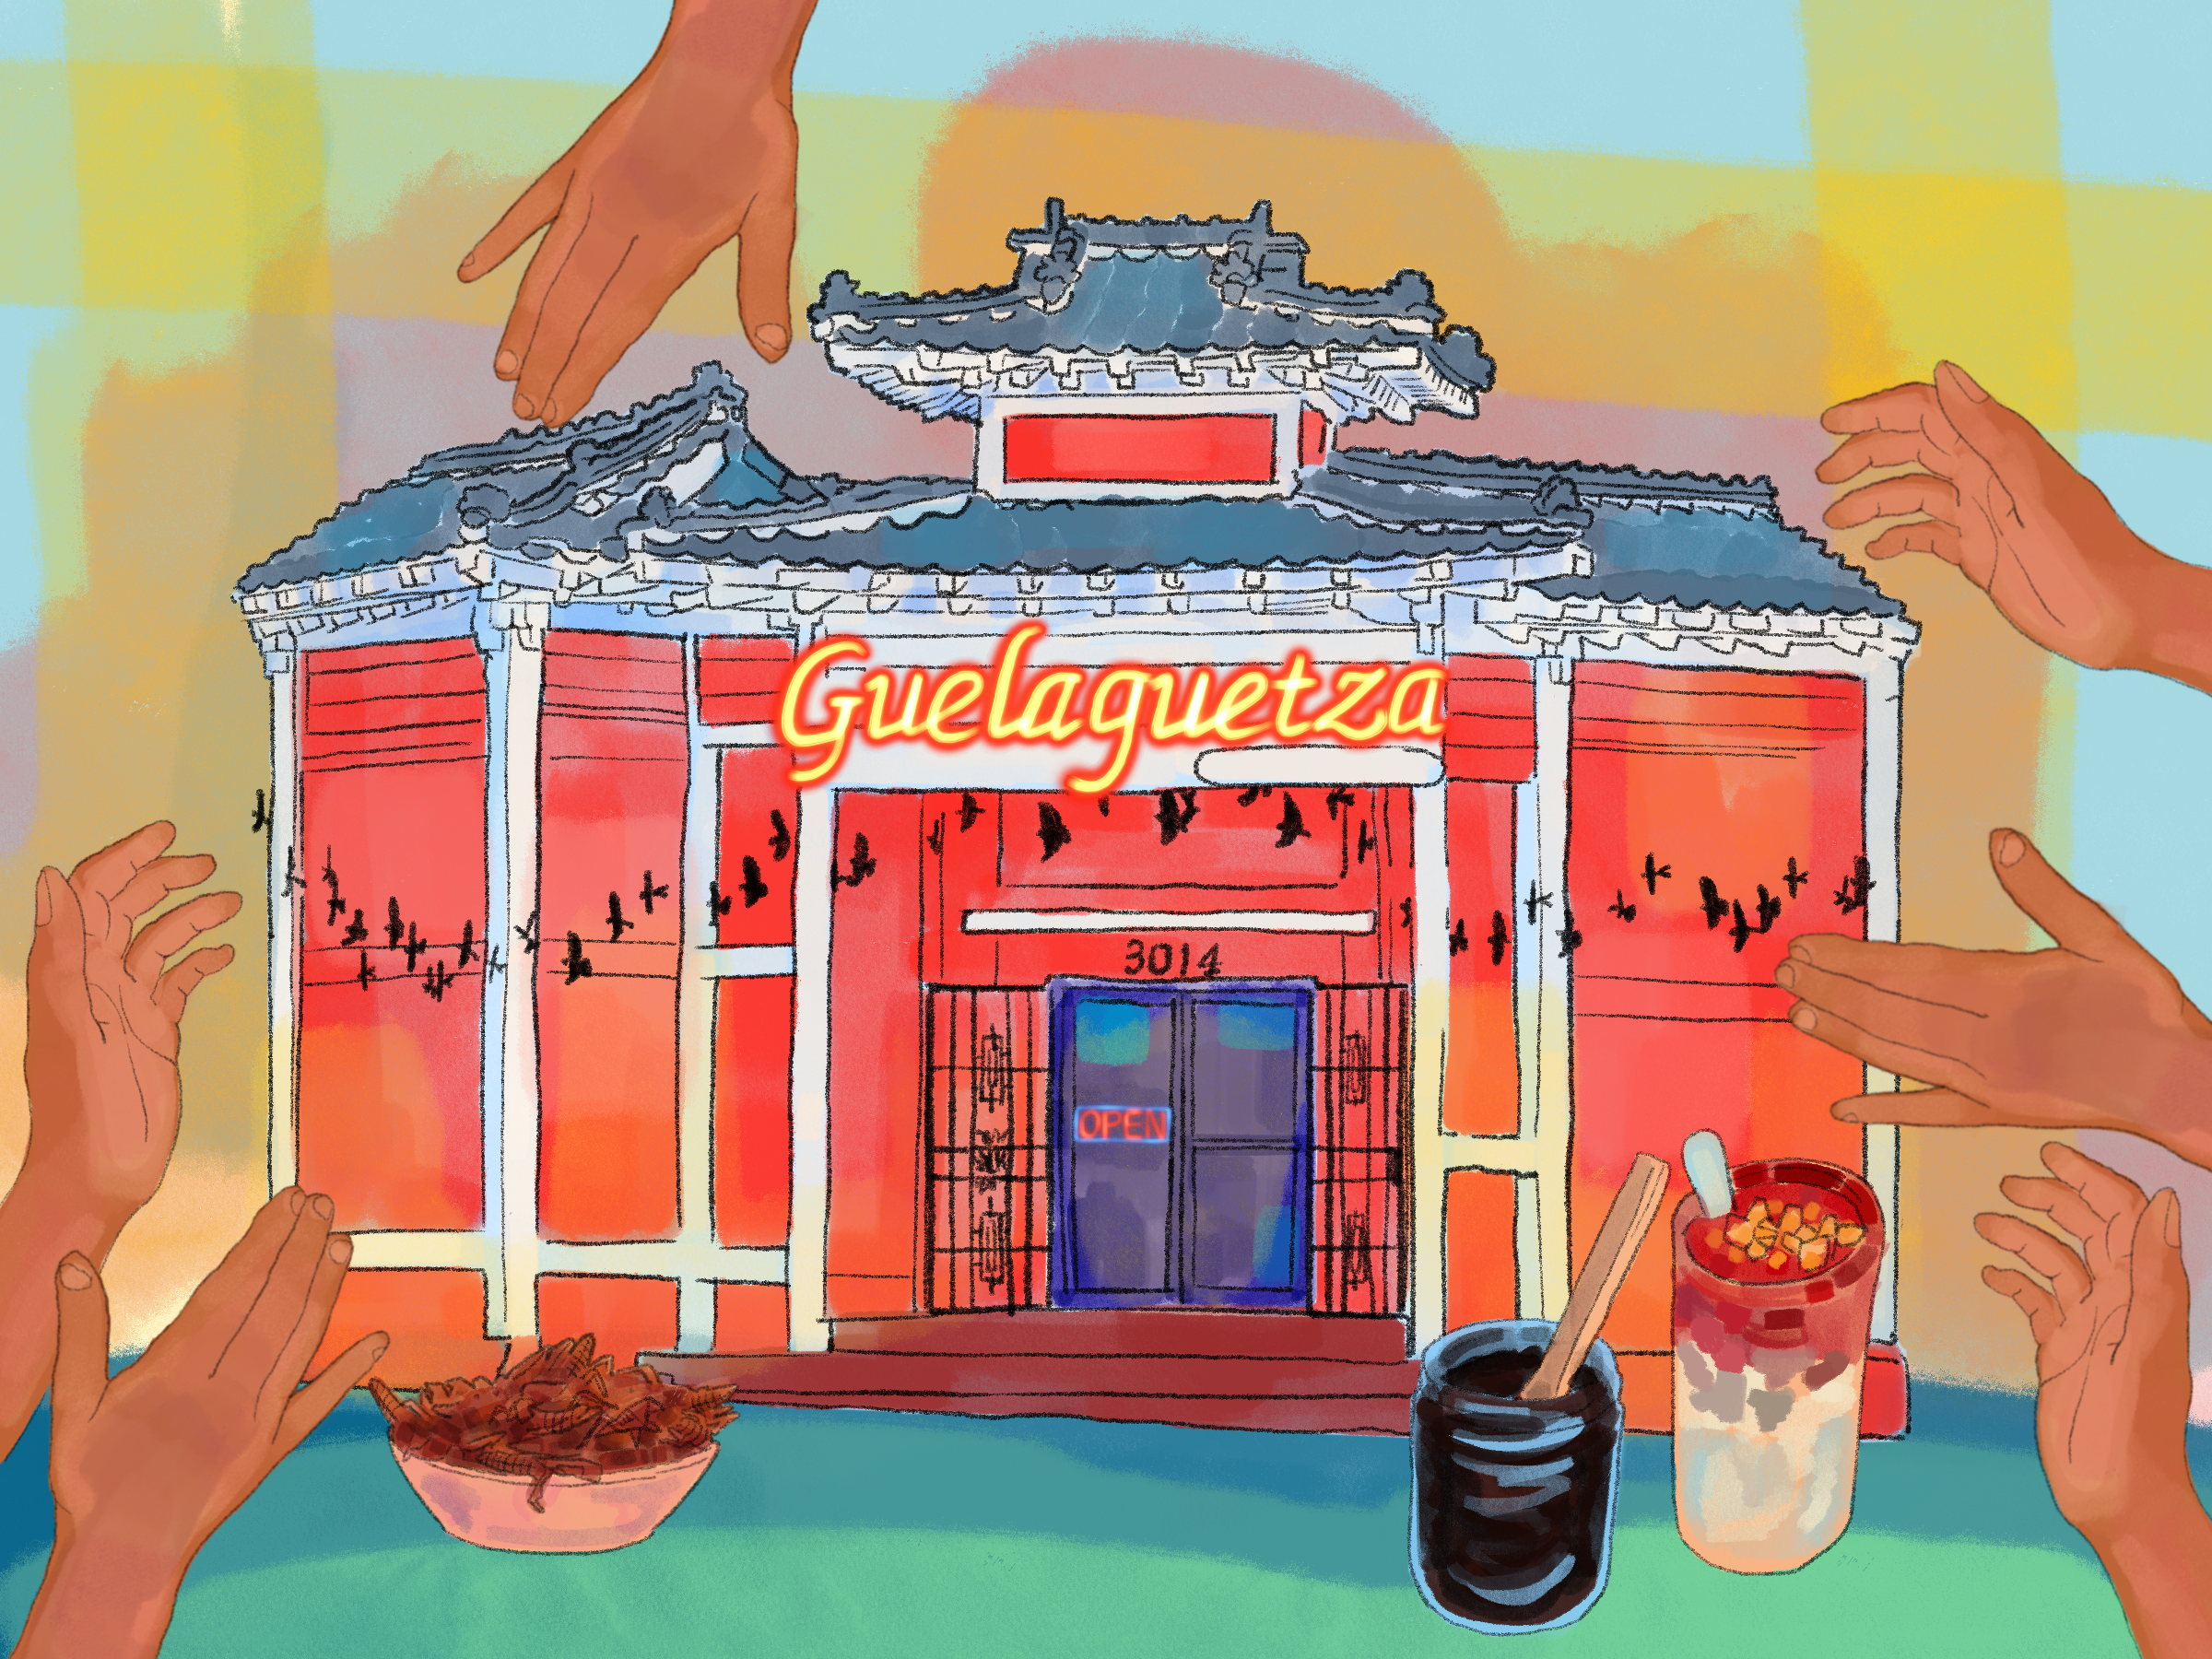 Illustration of the Guelaguetza restaurant, surrounded by brown-skinned hands.